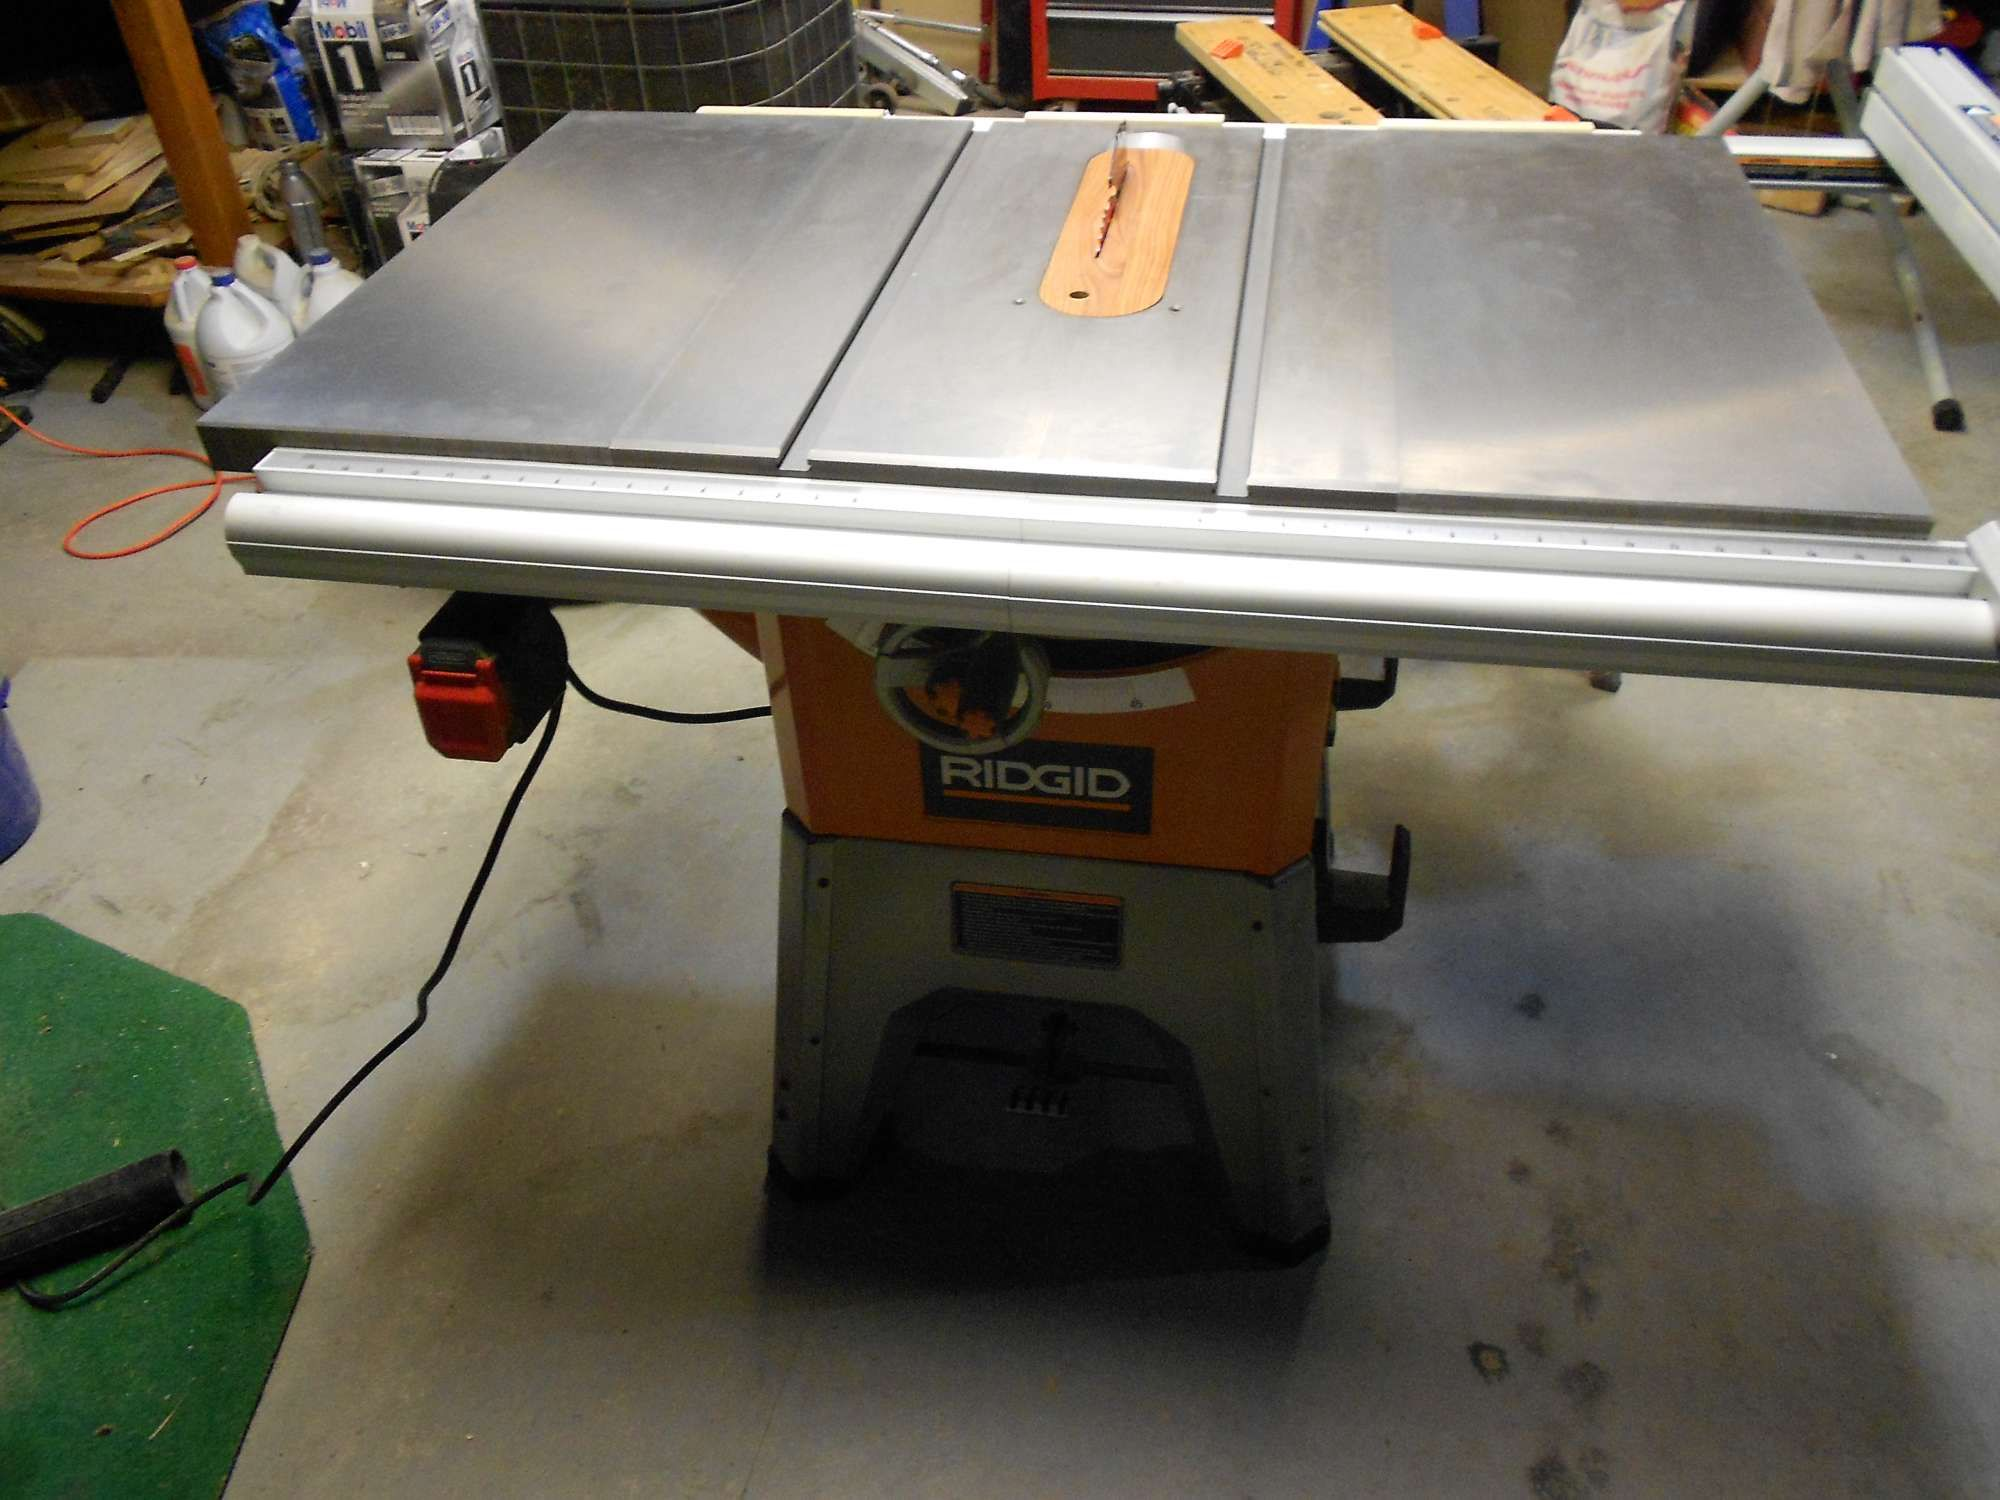 R4512 and saw stop cast iron wings as an upgrade for 10 cast iron table saw ridgid